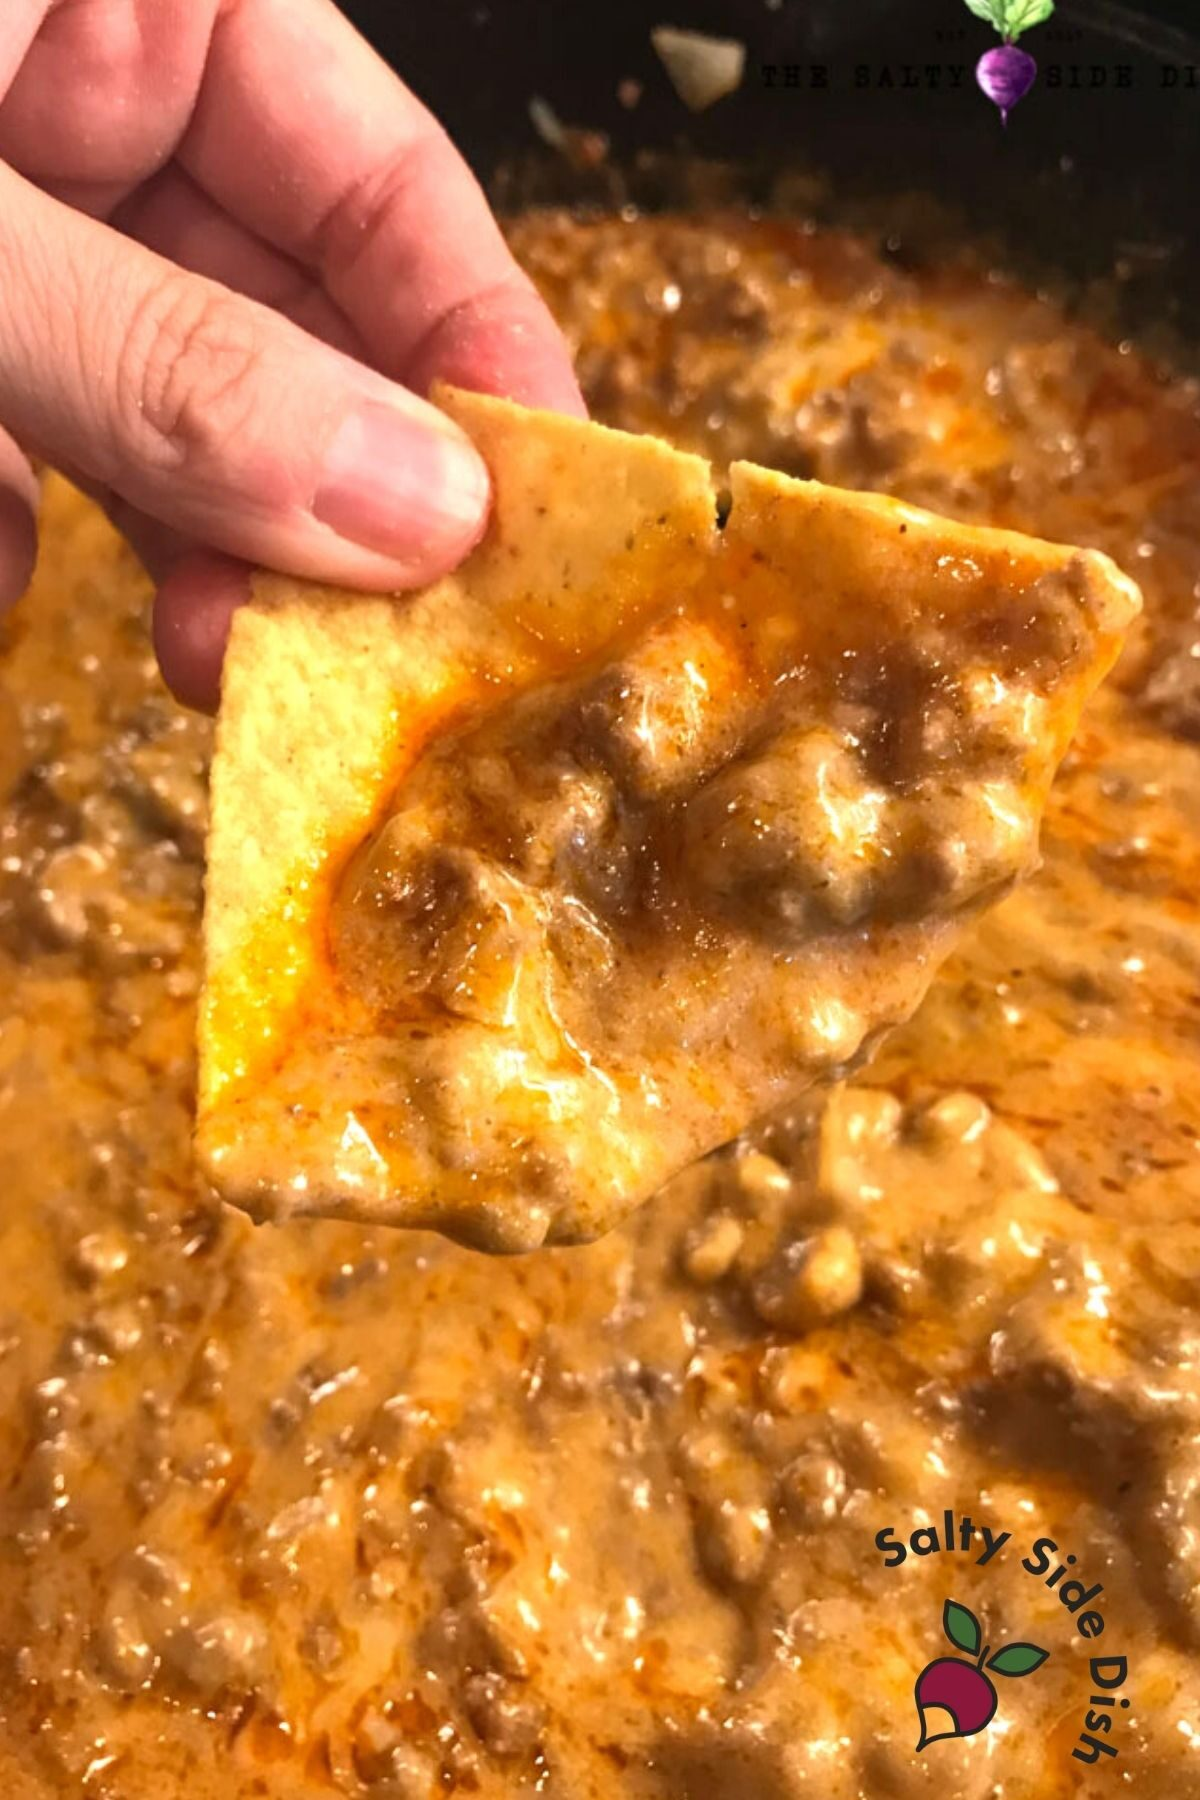 thick enchilada dip with beef on a tortilla chip being held.